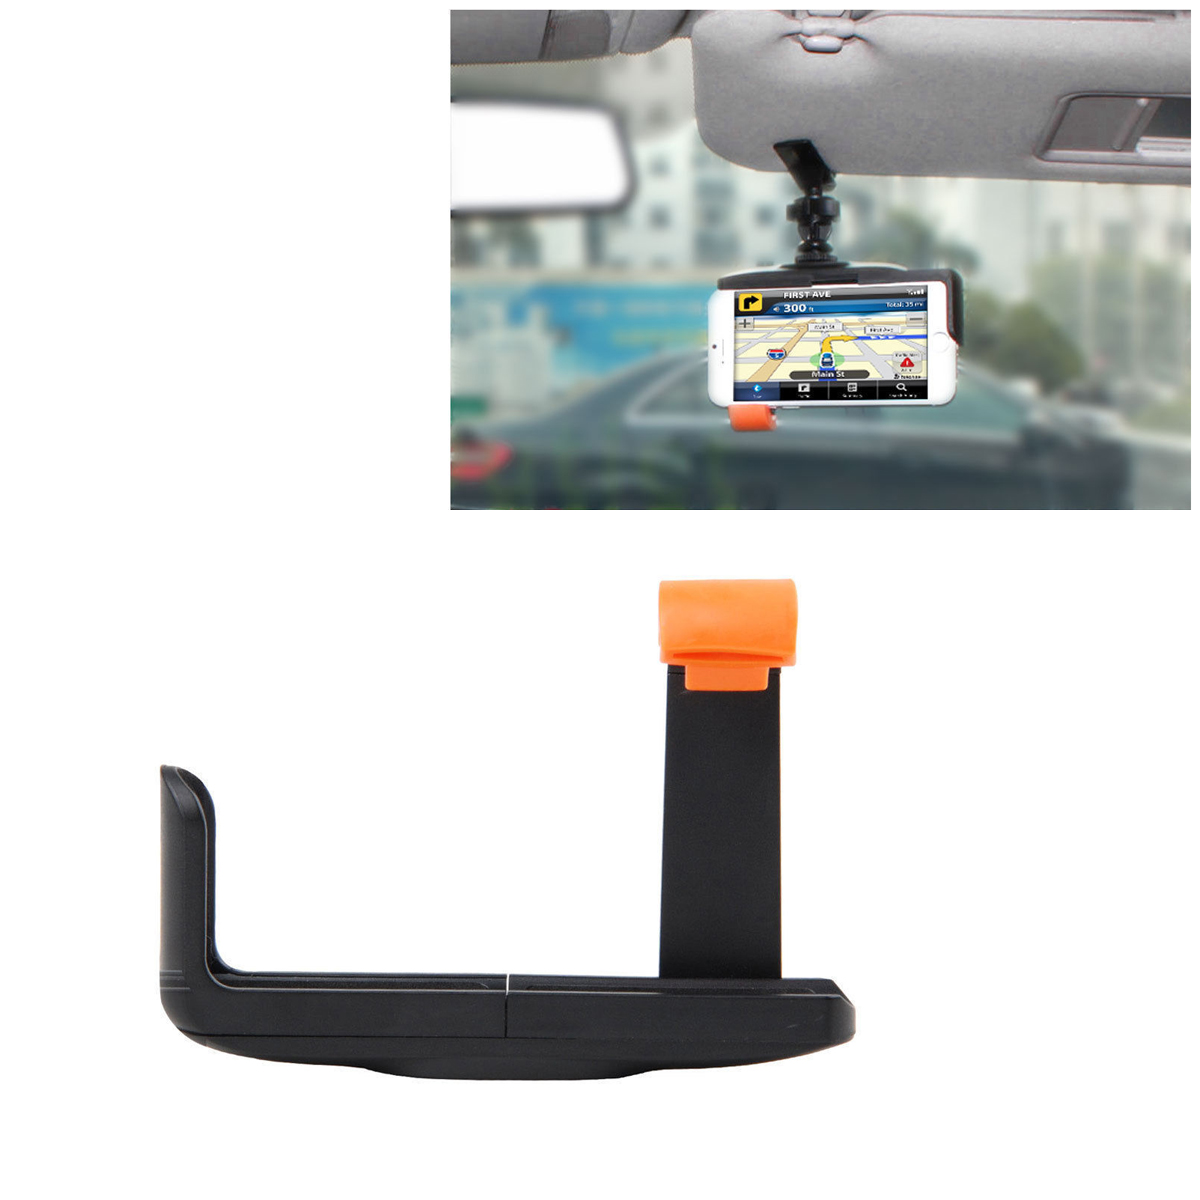 TSV Universal Cell Phone Tripod Mount Adapter Holder for iPhone/Samsung Galaxy/Nexus and More Cell Phones Use on Tripod, Monopod, Selfie Stick, Tabletop Tripod Stand and More